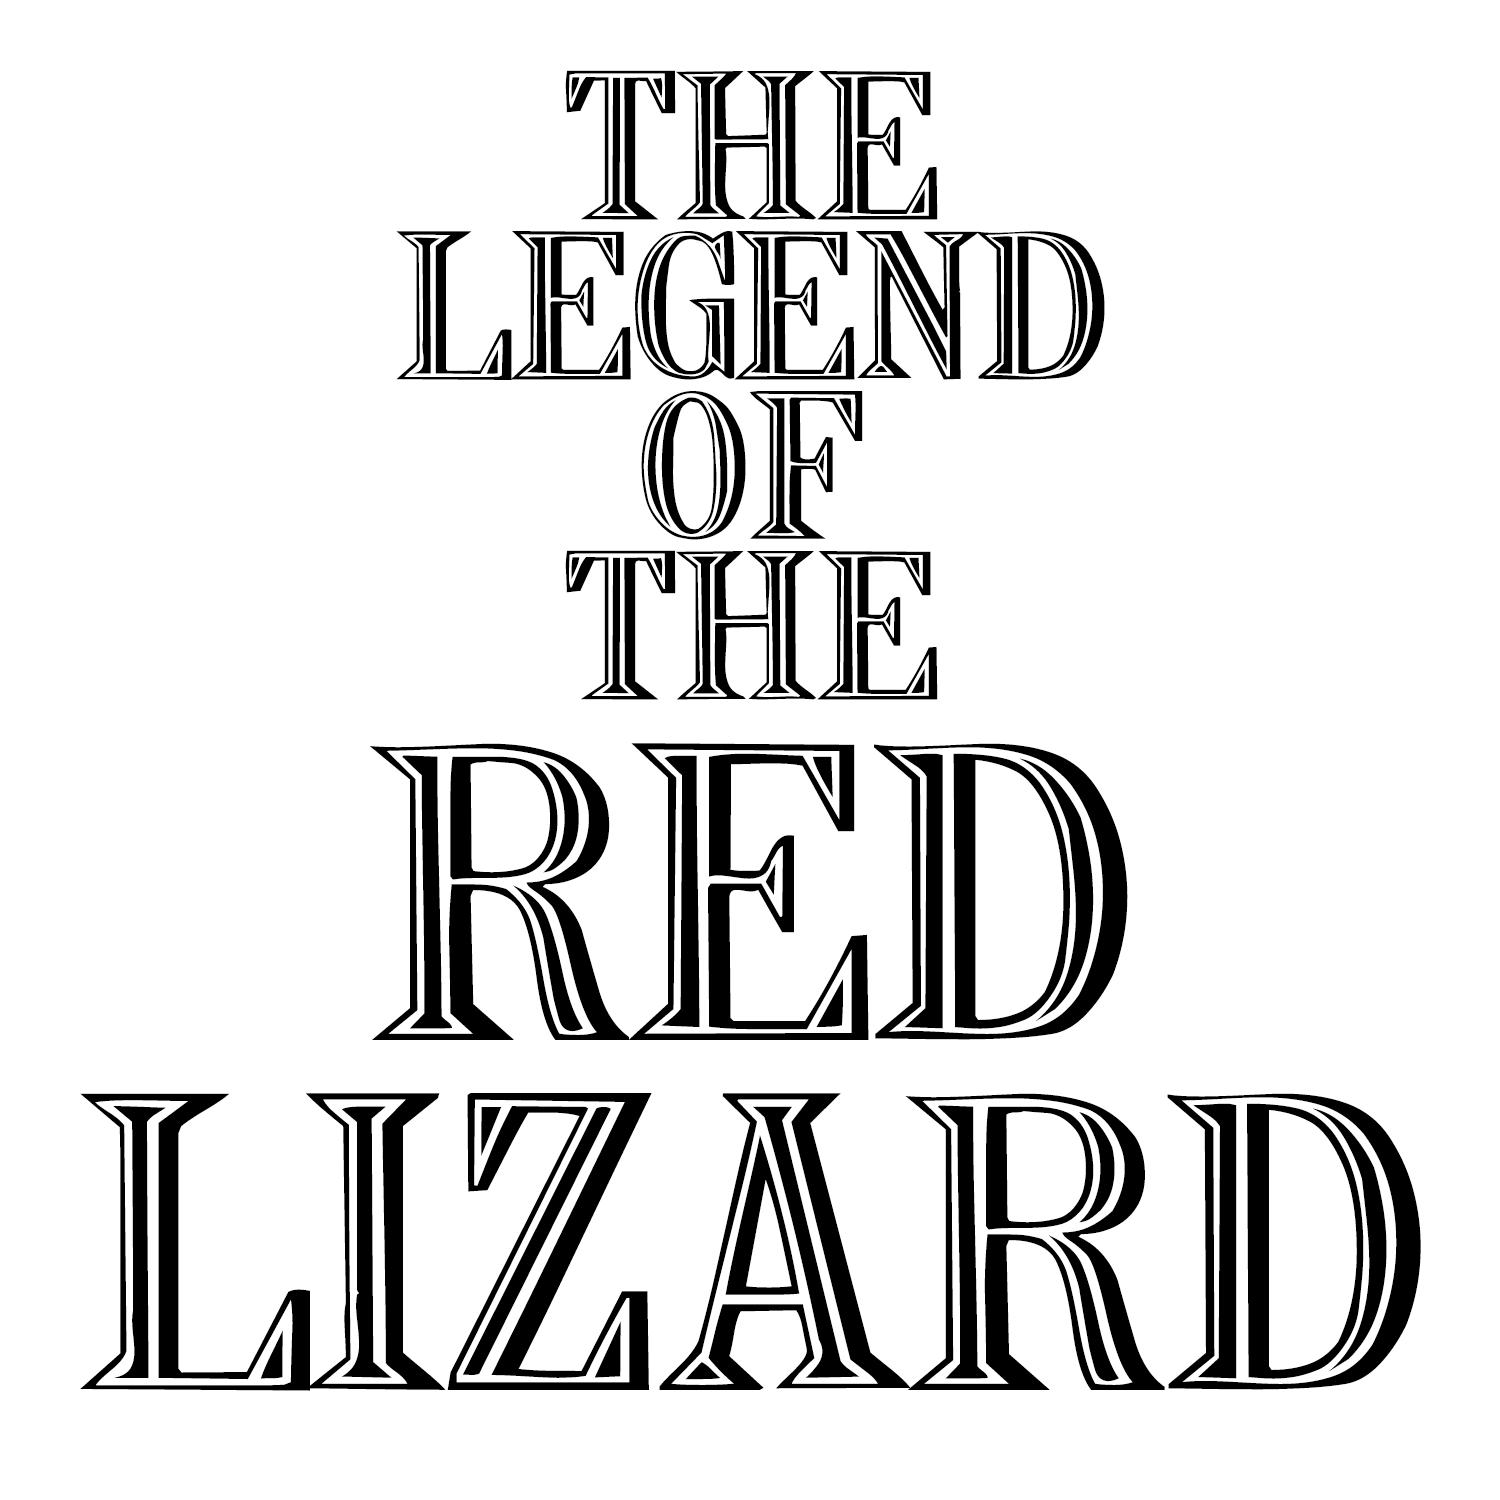 HG-Red-Lizard-Legend-of-the-Red-Lizard